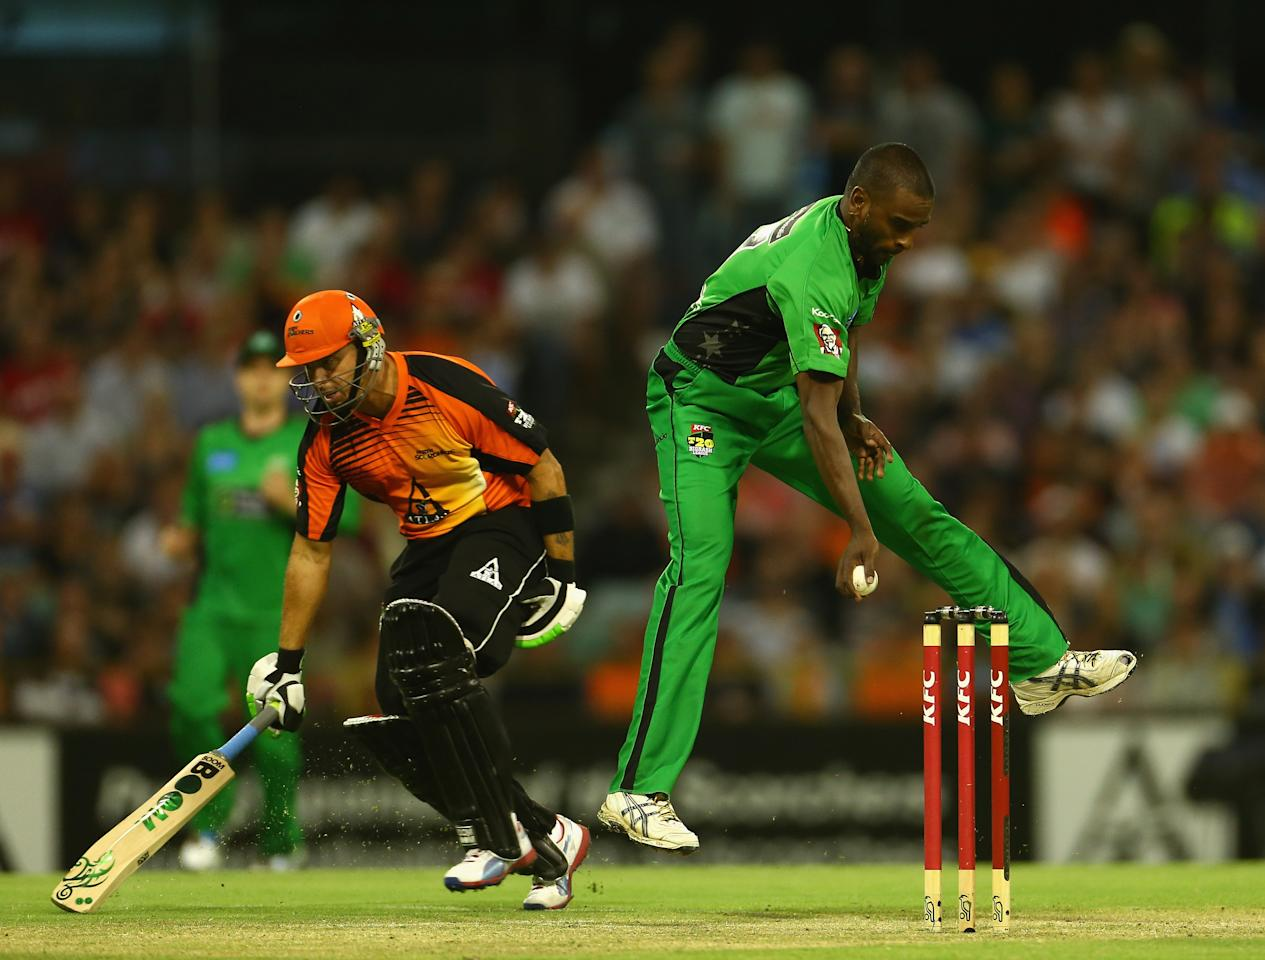 PERTH, AUSTRALIA - JANUARY 16: Dimitri Mascarenhas of the Stars attempts to run out Herschelle Gibbs of the Perth Scorchers during the Big Bash League semi-final match between the Perth Scorchers and the Melbourne Stars at the WACA on January 16, 2013 in Perth, Australia.  (Photo by Robert Cianflone/Getty Images)